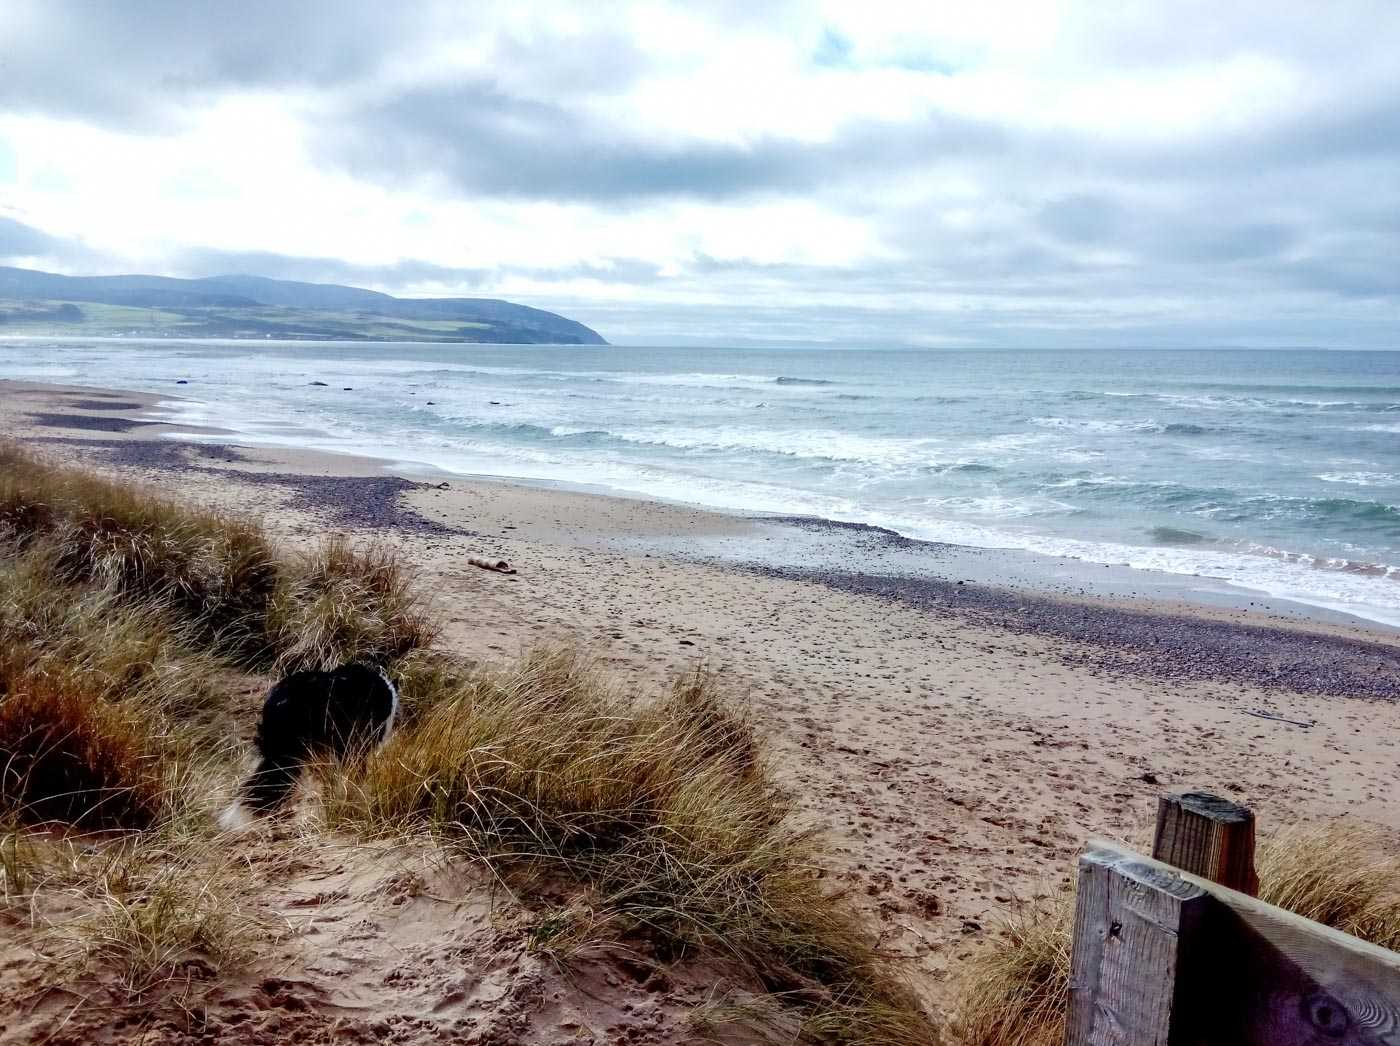 A dog snuffles around at the edge of some sand dunes, but a wide and empty pale sand beach is the centre of the picture, with low-rise waves coming in on the sea. There are distant hills to the left, because this is Scotland and there are always distant hills.